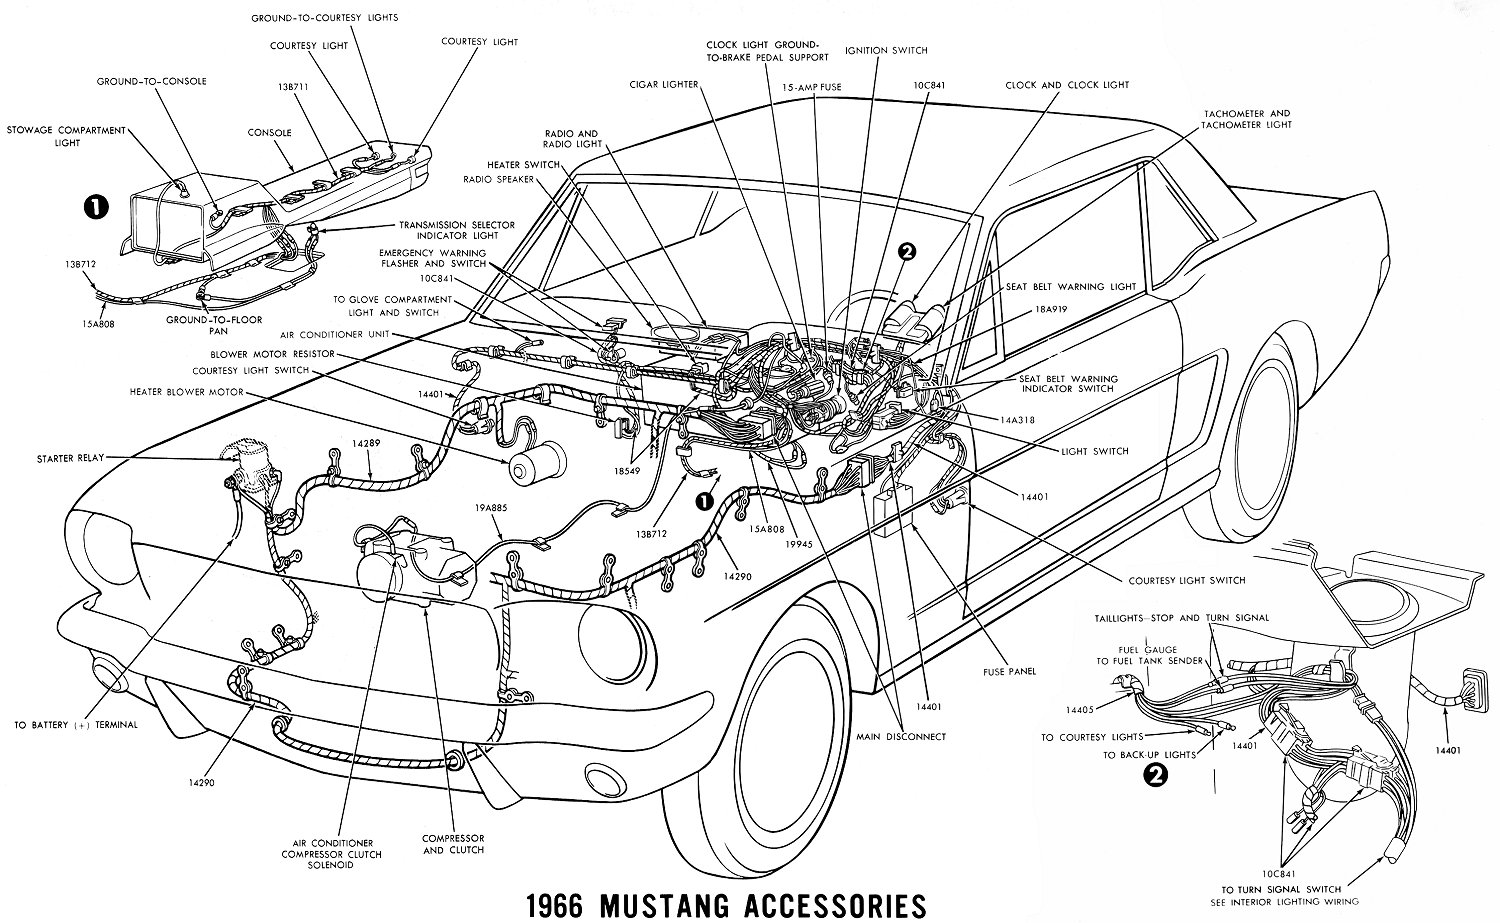 66acces vintage mustang wiring diagrams 1967 mustang instrument cluster wiring diagram at sewacar.co